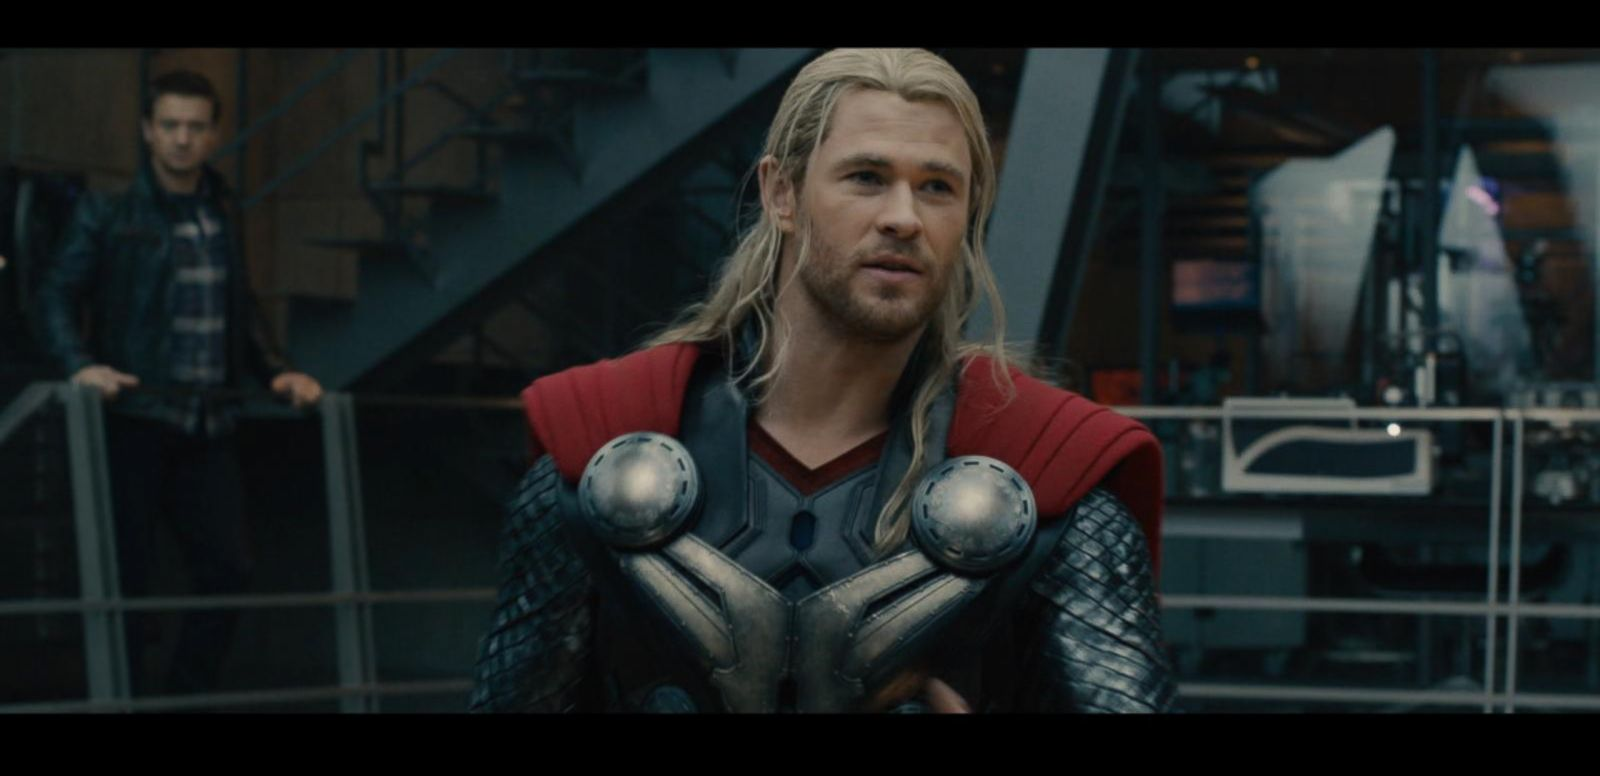 VIDEO: Index: 'Avengers' Sequel On Track to Break Record for Top-Grossing Opening Weekend